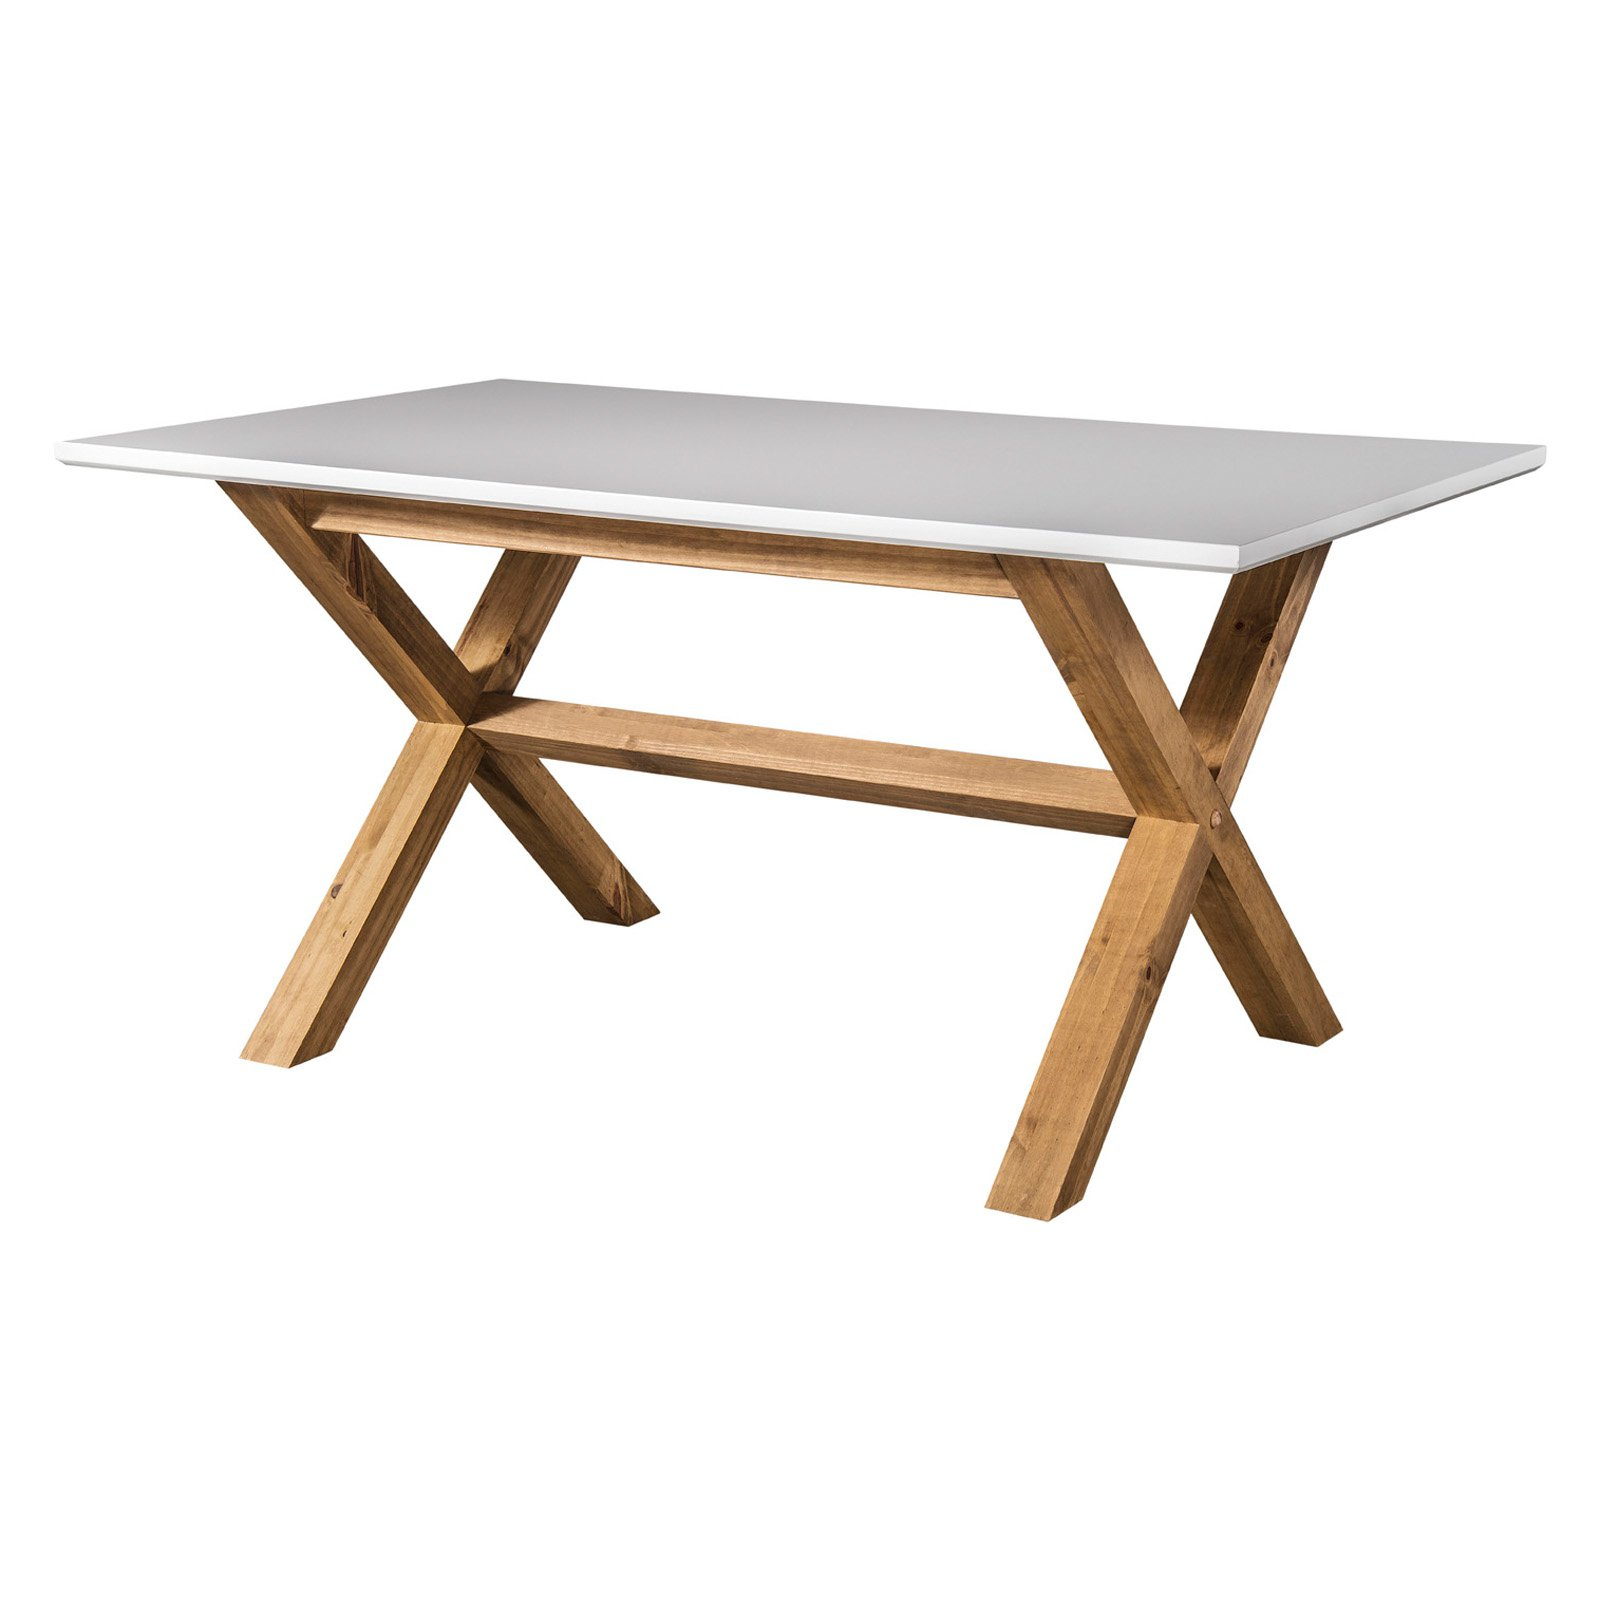 Rustic Mid-Century Modern Barclay 6-Seating Dining Table In White And  Natural Wood - Walmart in Trendy Rustic Mid-Century Modern 6-Seating Dining Tables In White And Natural Wood